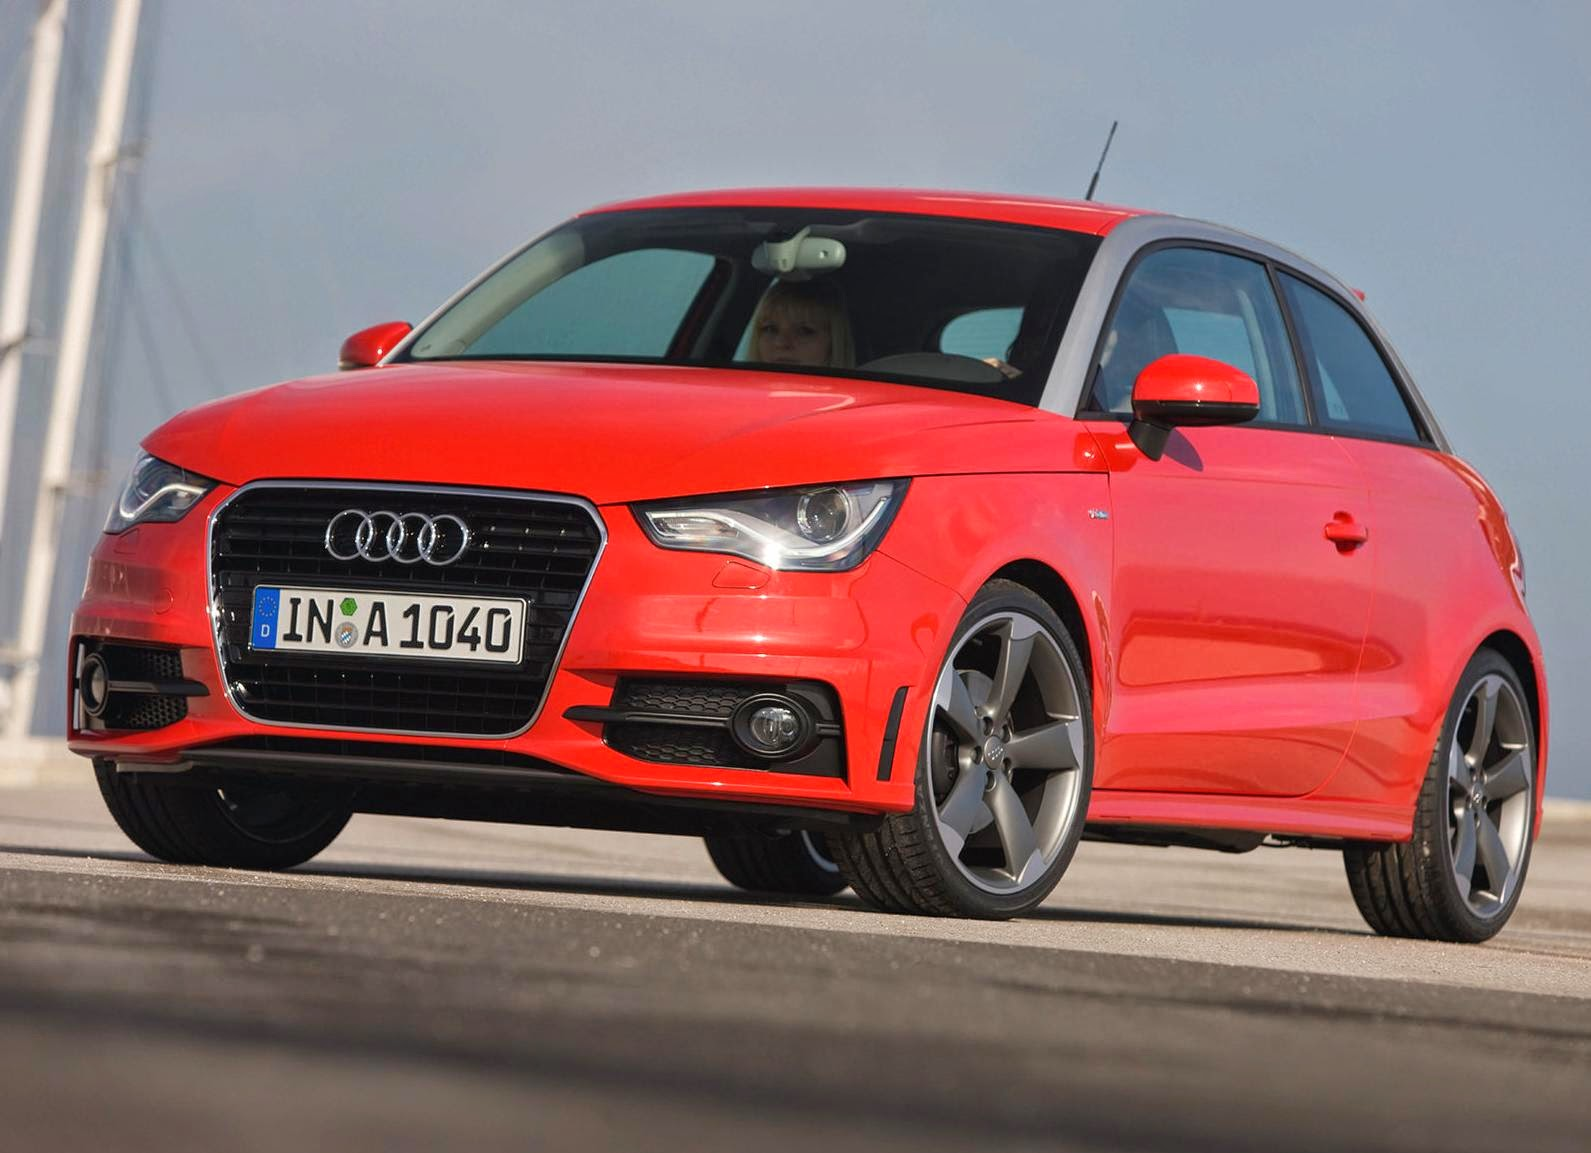 Audi A1 2011 Widescreen Wallpaper